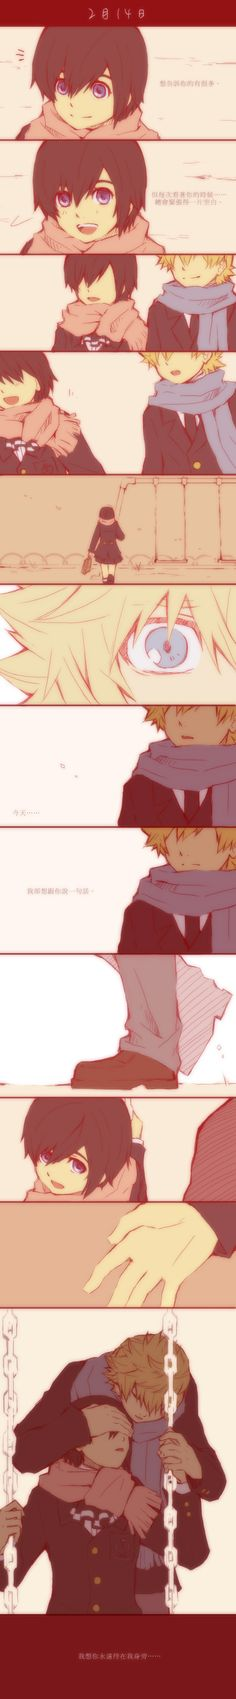 Xion x Roxas please can some one translate this